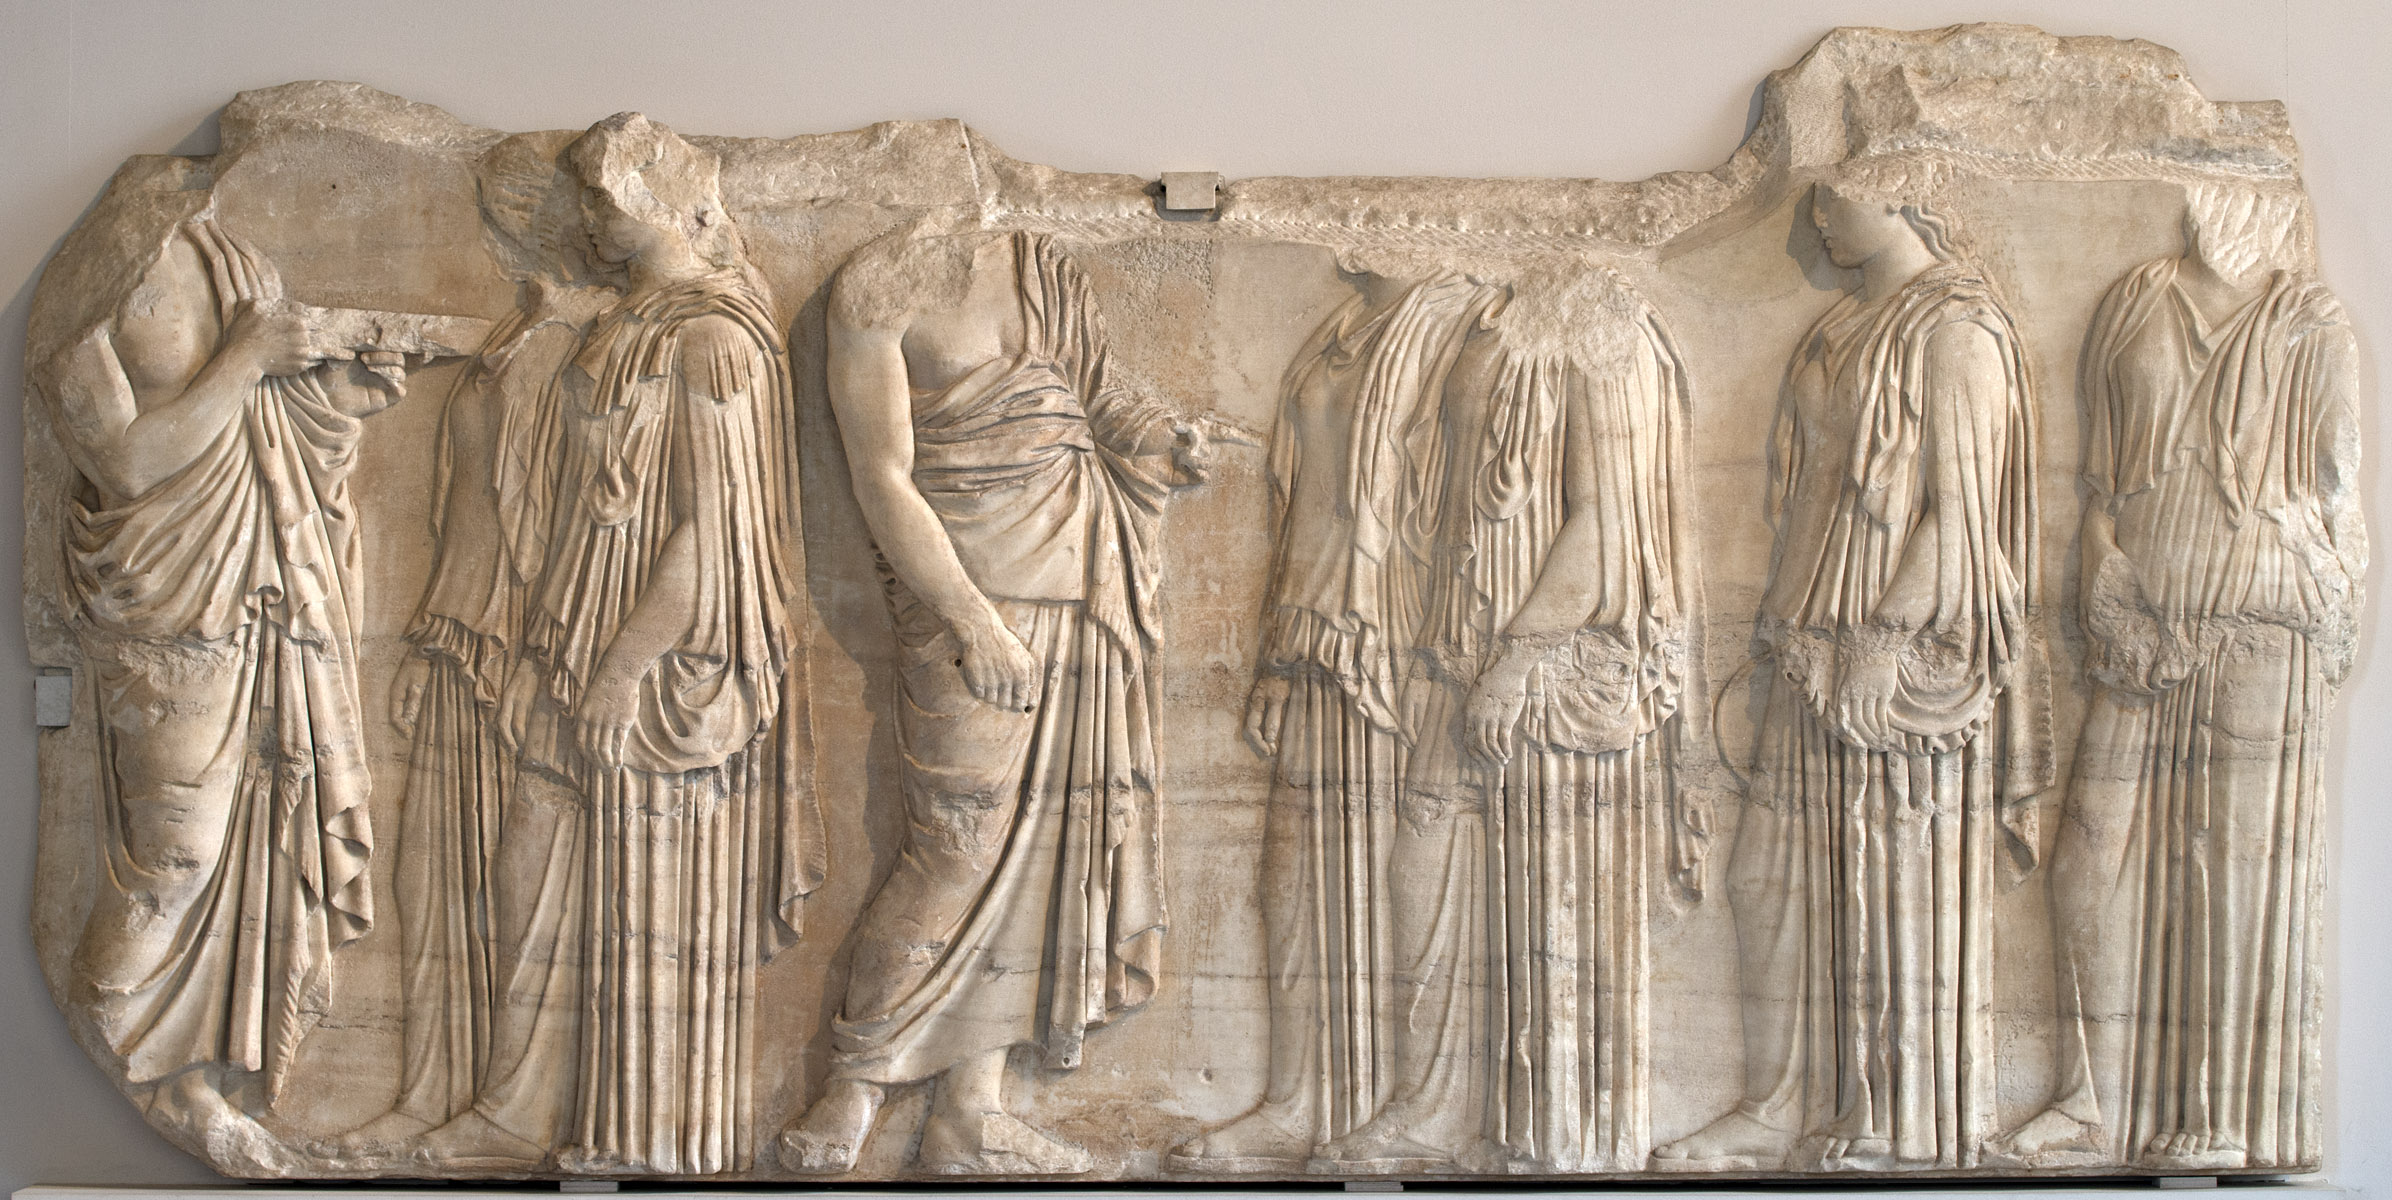 Panathenaic Procession. Ergastines. Frieze of Parthenon. The Eastern face. Penthelic marble. 445—438 BCE. Inv. No. MR 825 / Ma 738. Paris, Louvre Museum